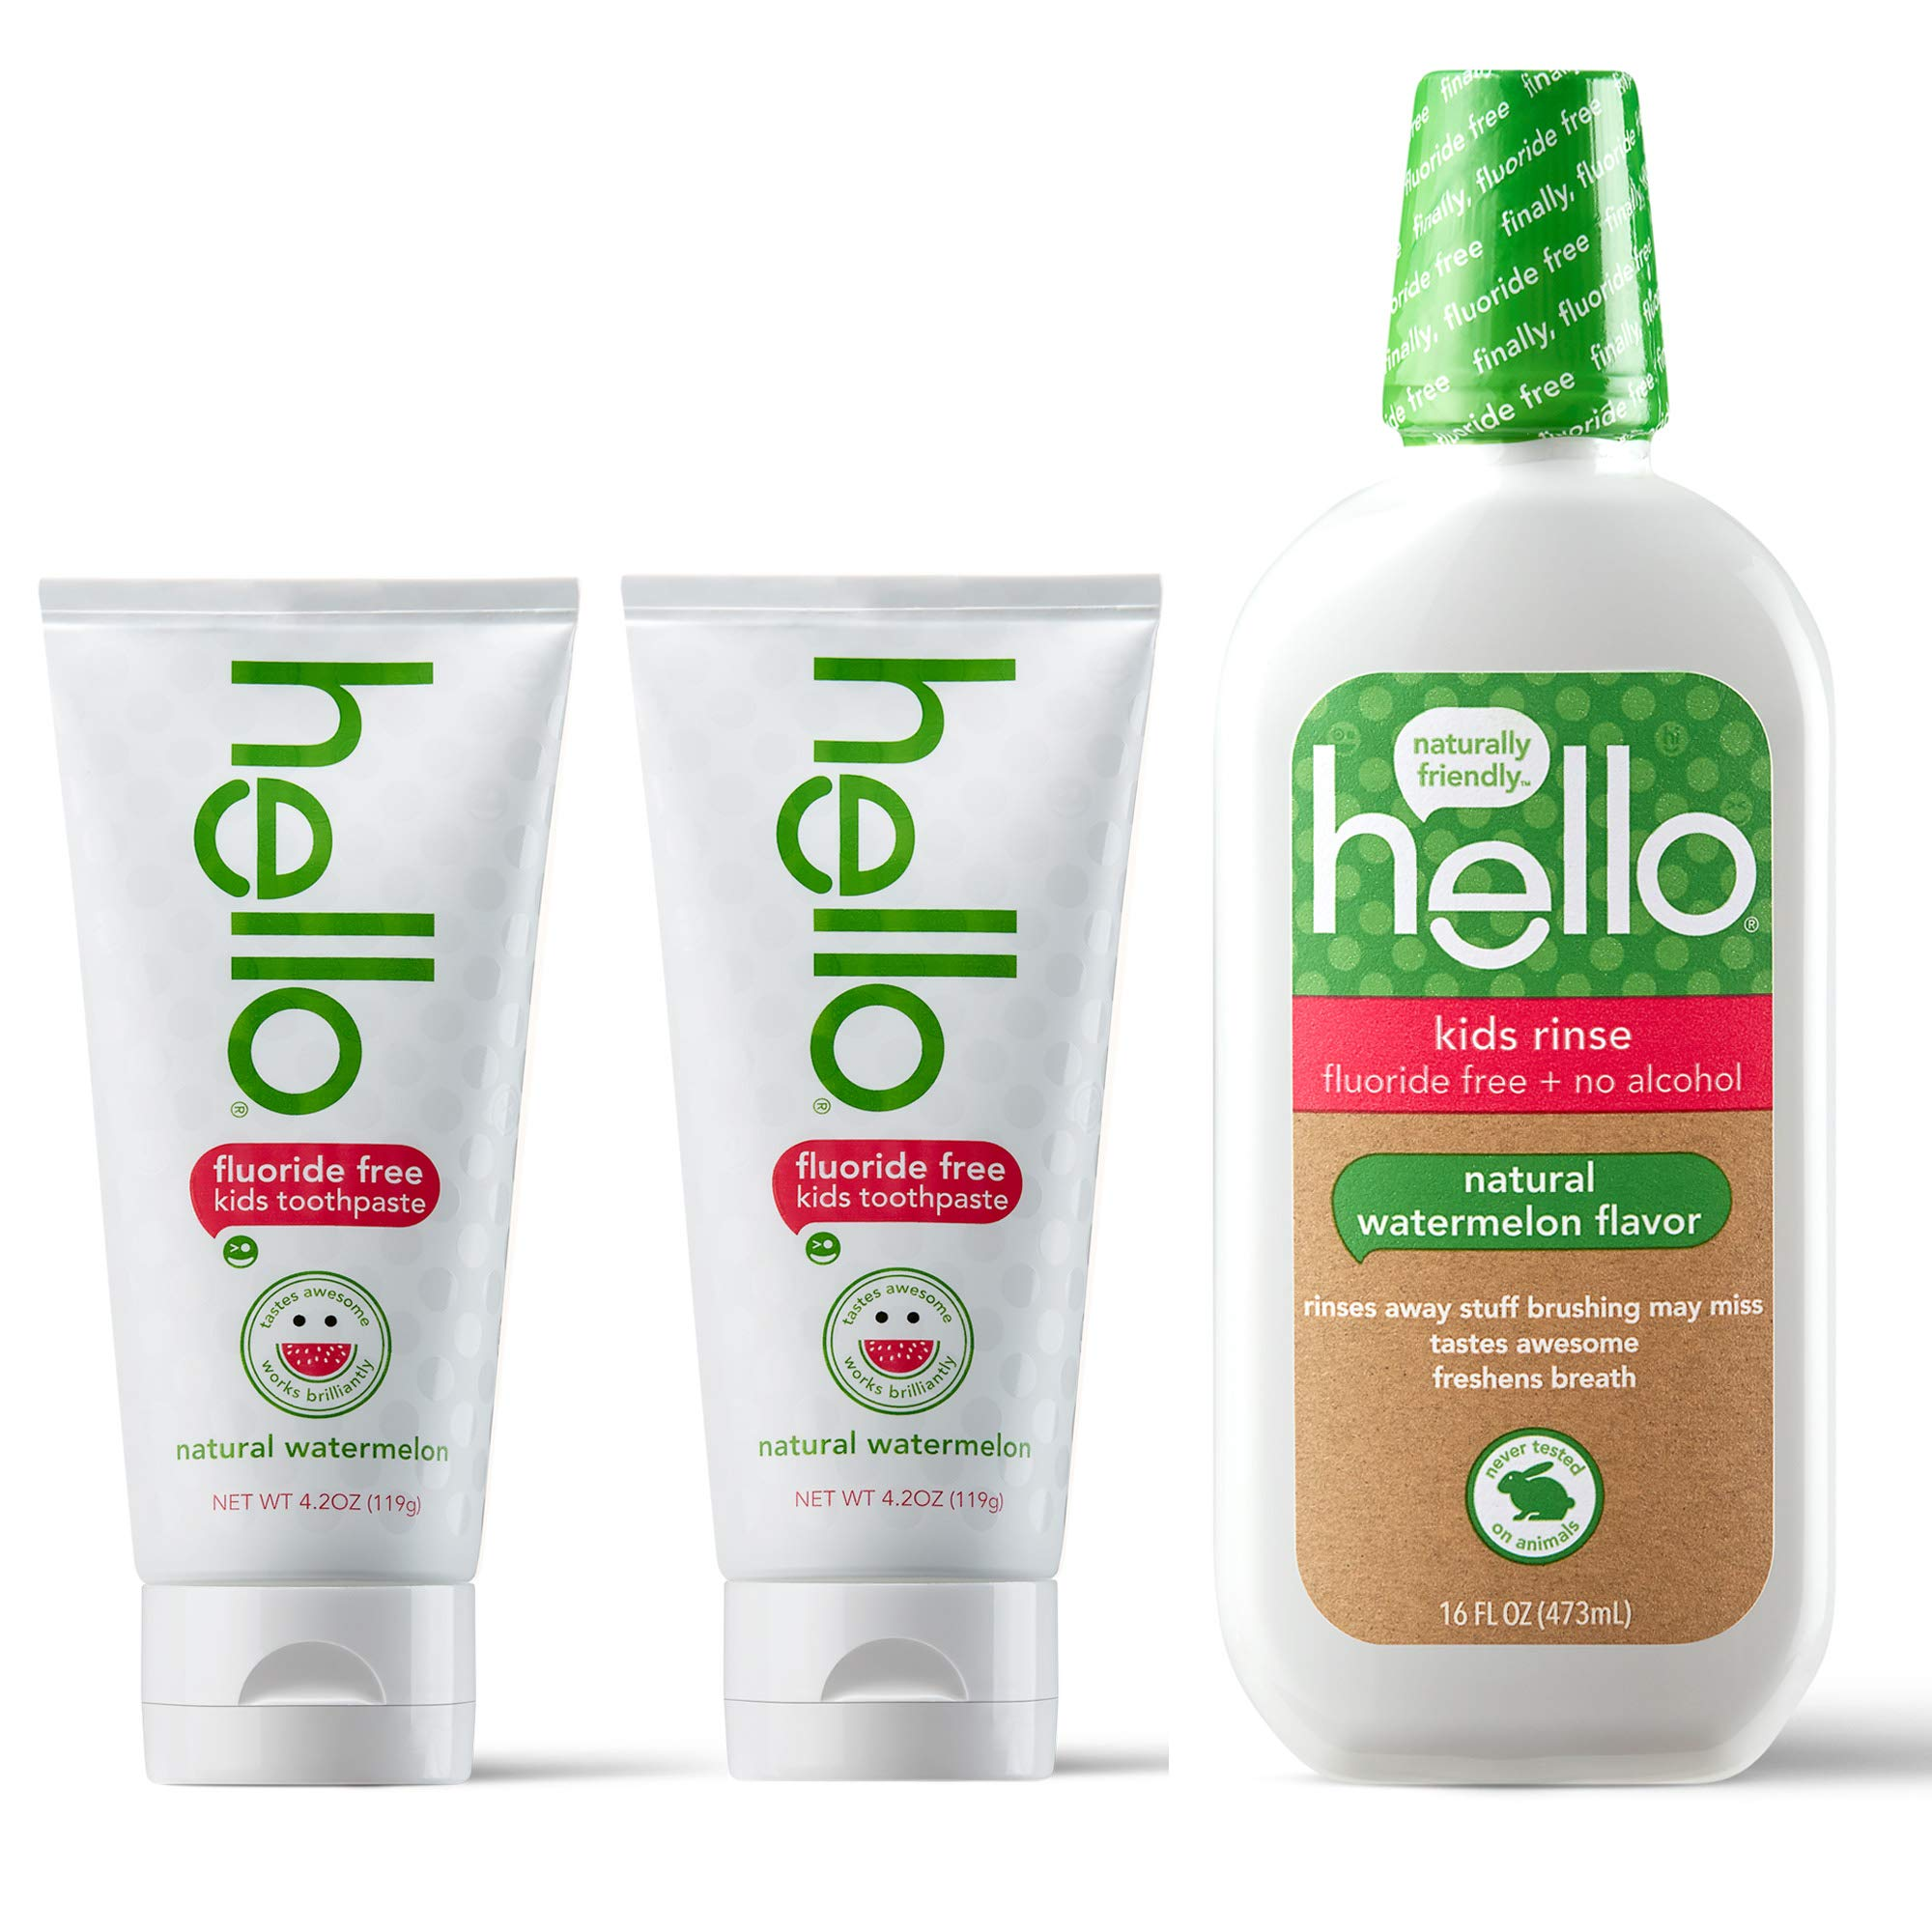 Hello Oral Care Kids Fluoride Free SLS Free Toothpaste Twin Pack with Fluoride Free Rinse, Natural Watermelon